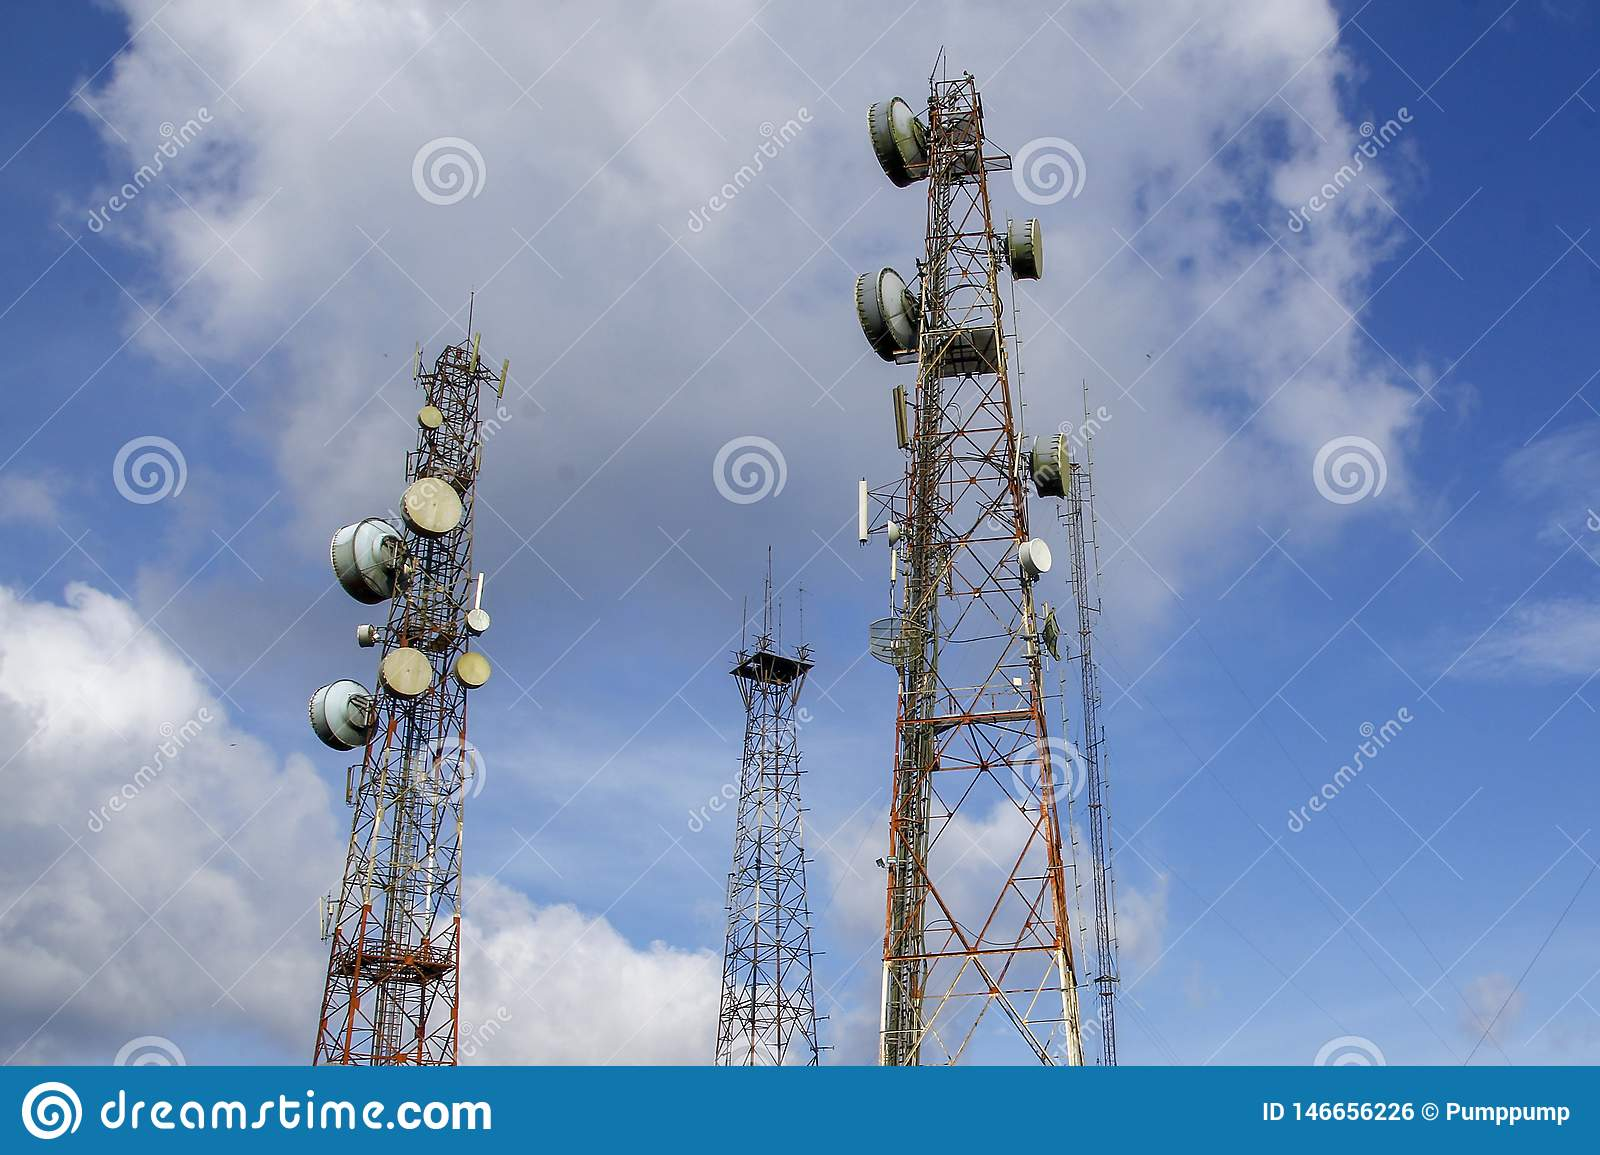 communication and telecommunication pole in nature on blue sky at asia